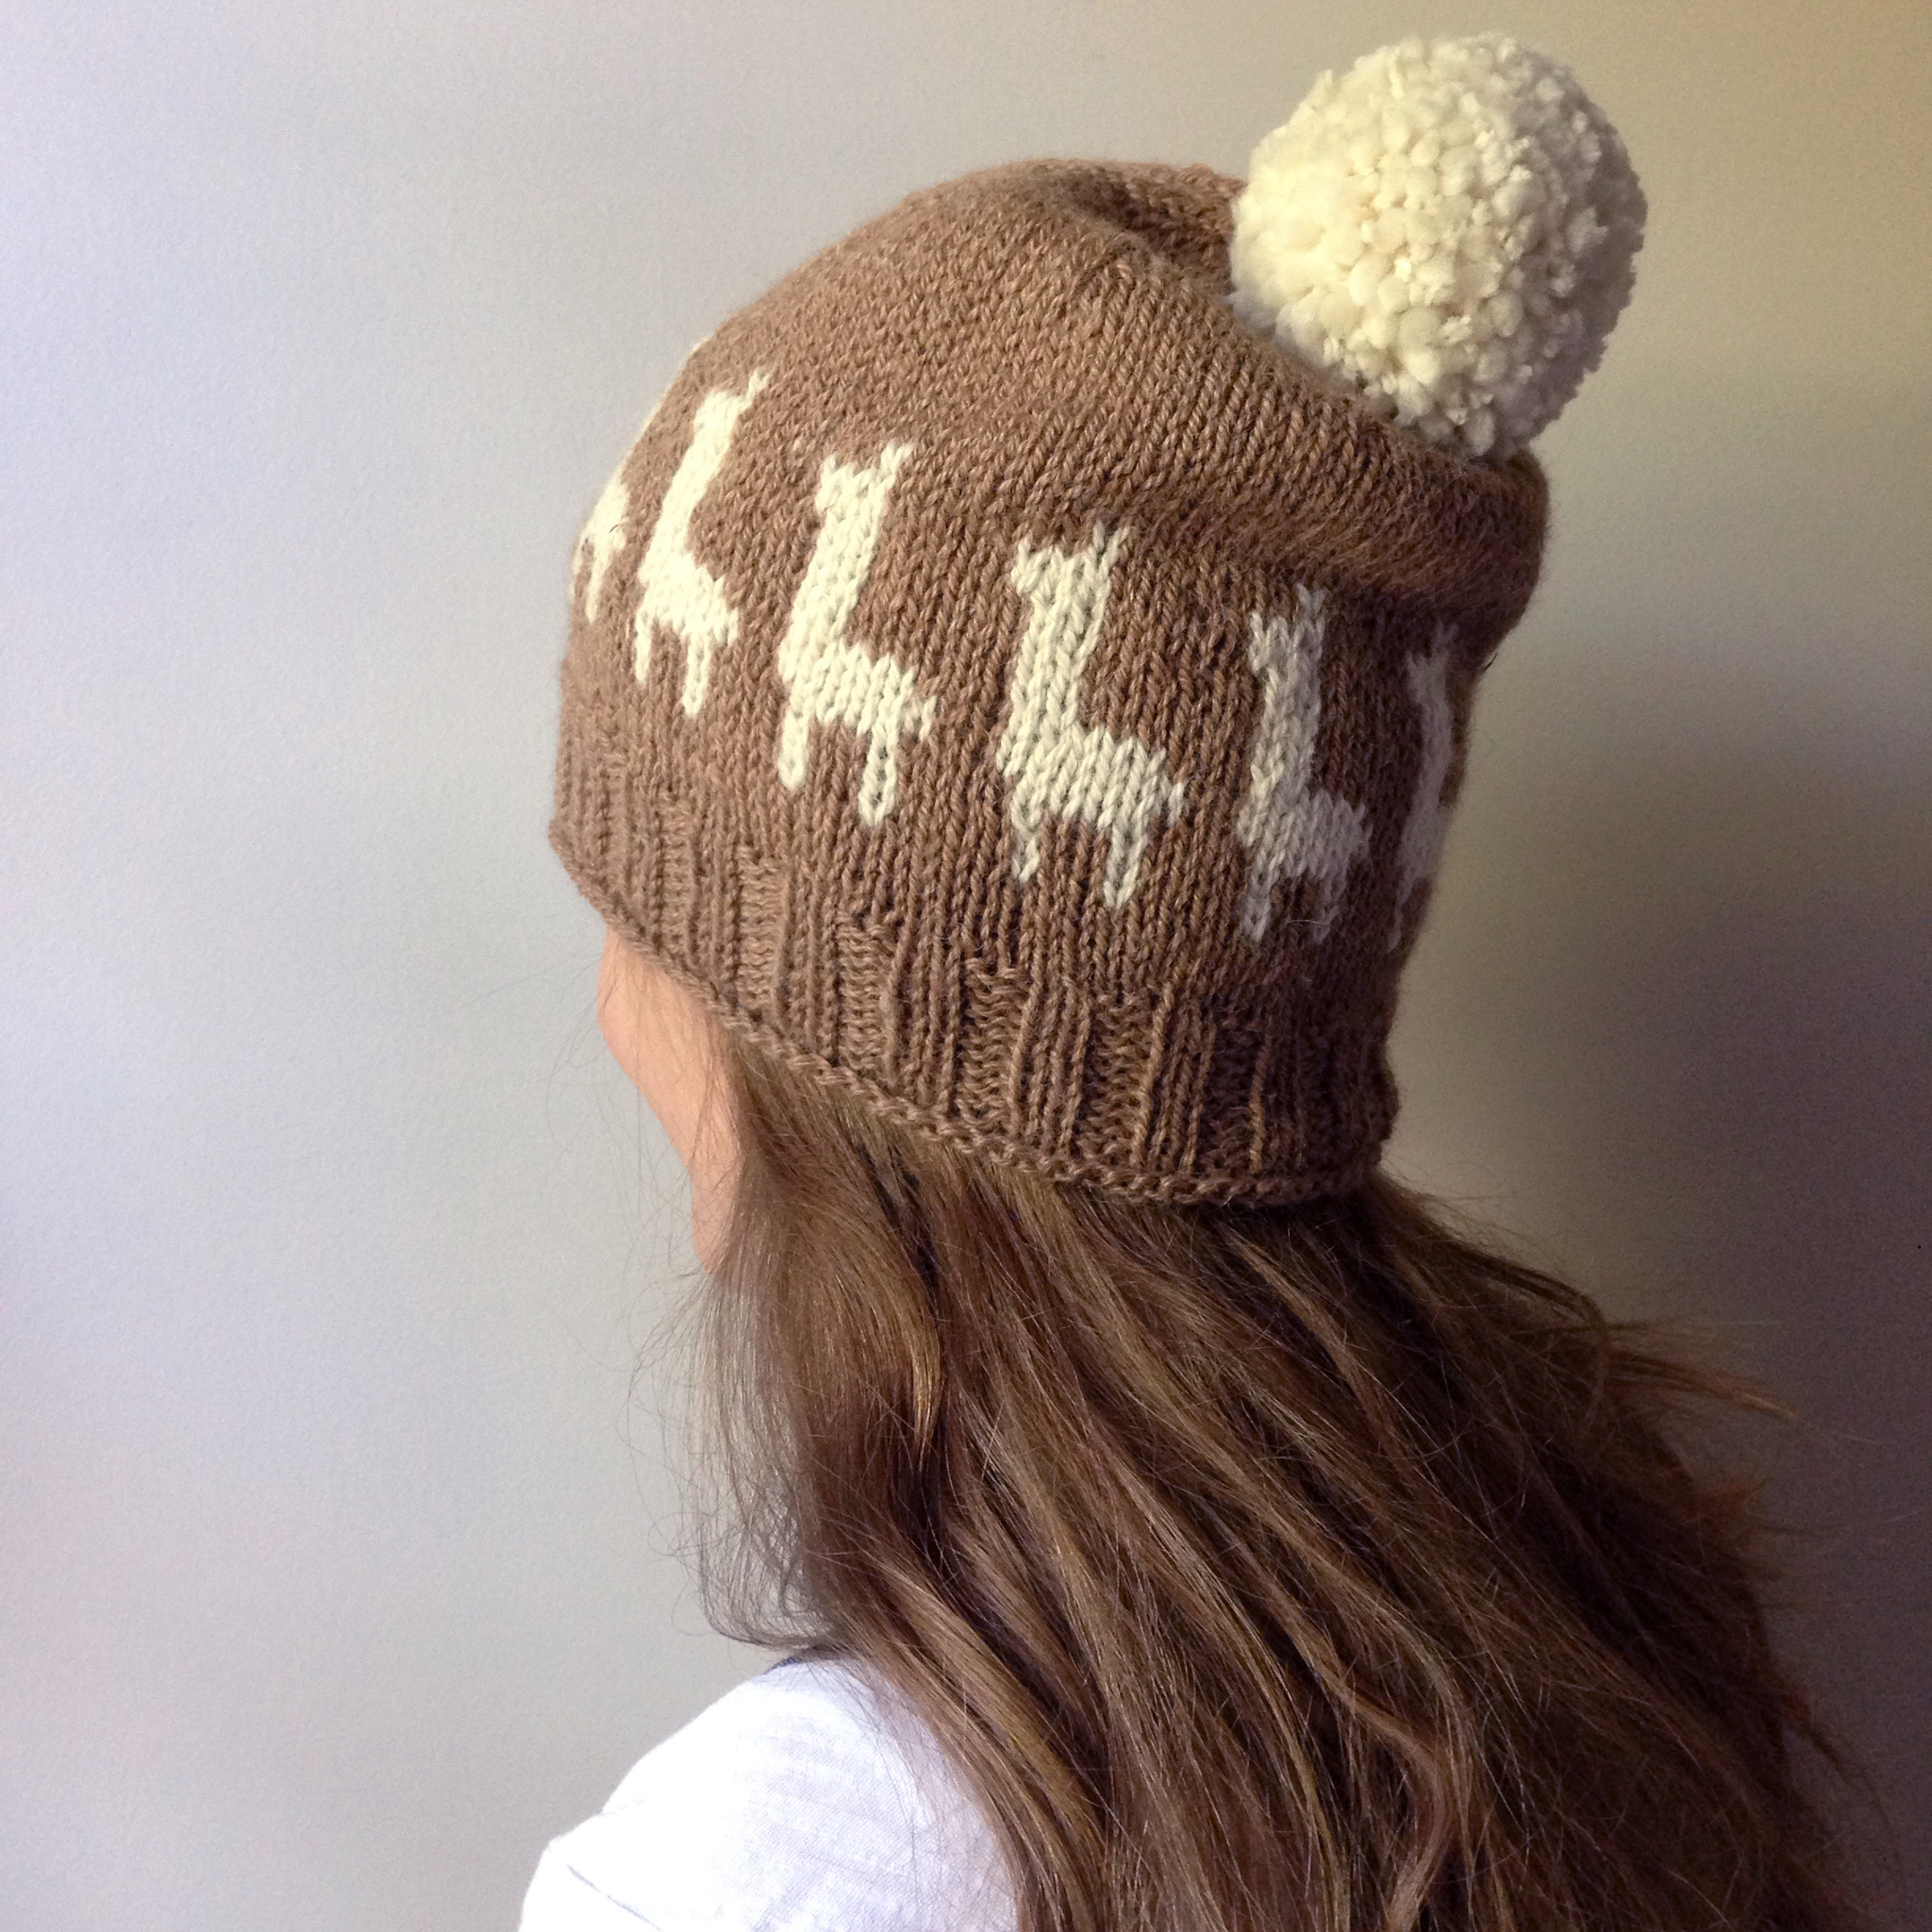 KIT - Chetwyn Alpaca Cap (pattern & yarn for knitting)